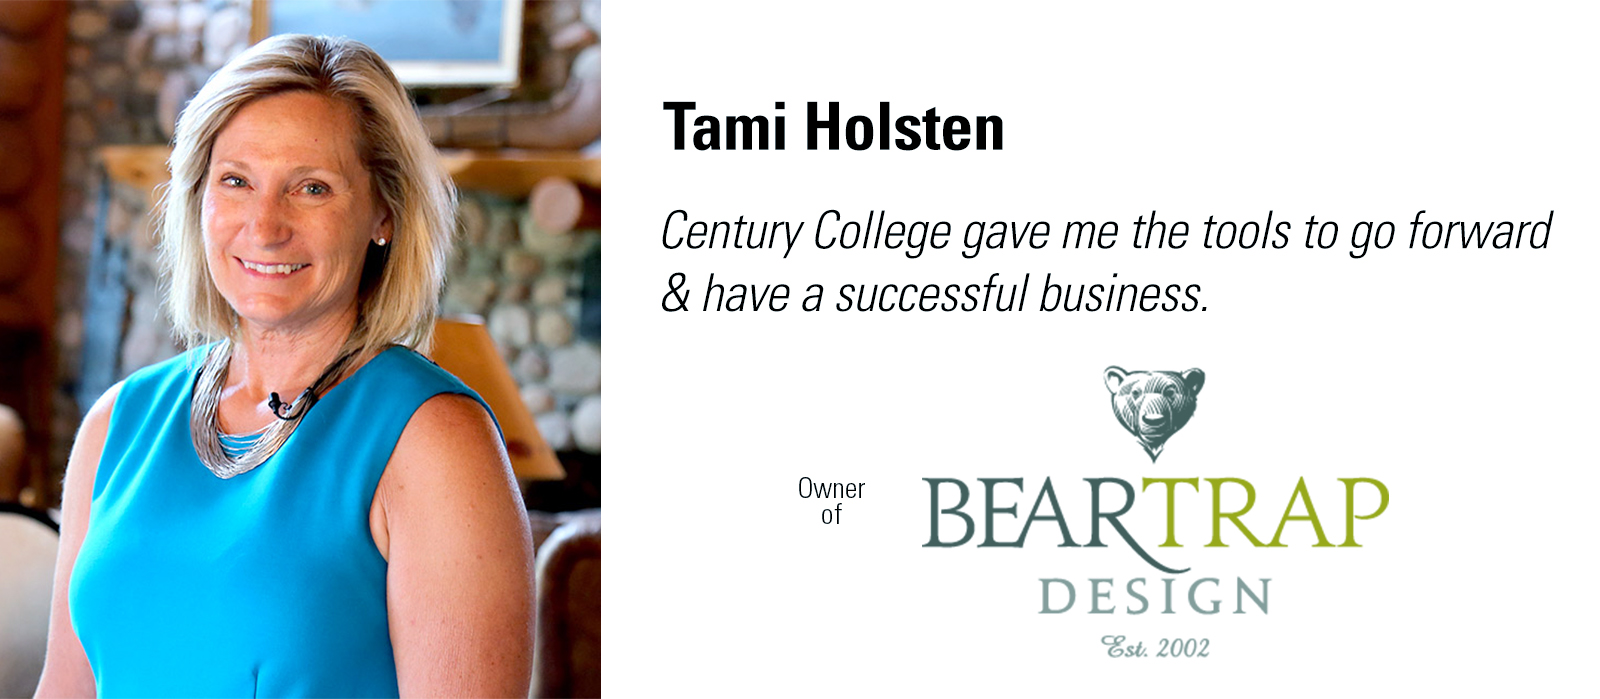 Century College gave me the tools to go forward & have a successful business.